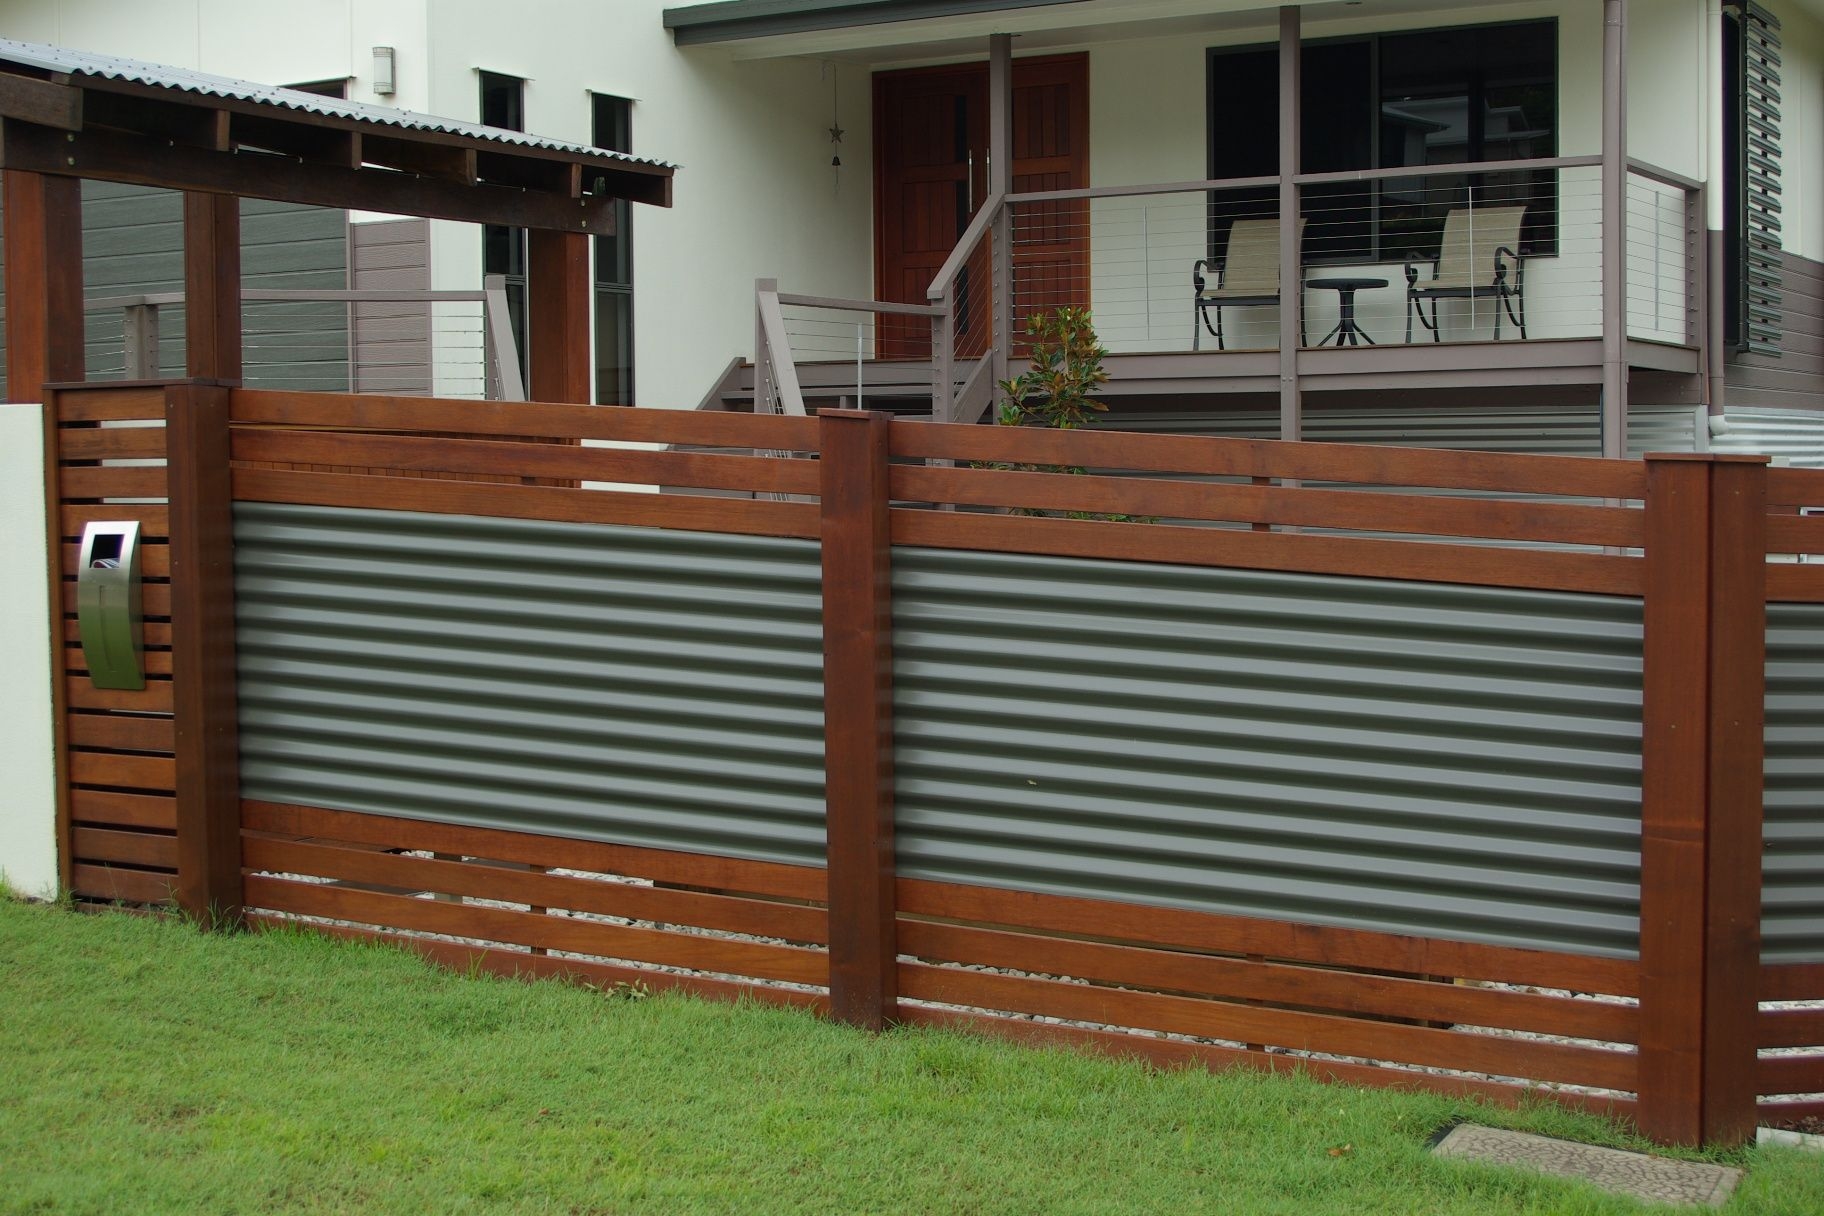 fence designs categories fences and gates merbau gates and screens timber screens - Fence Design Ideas